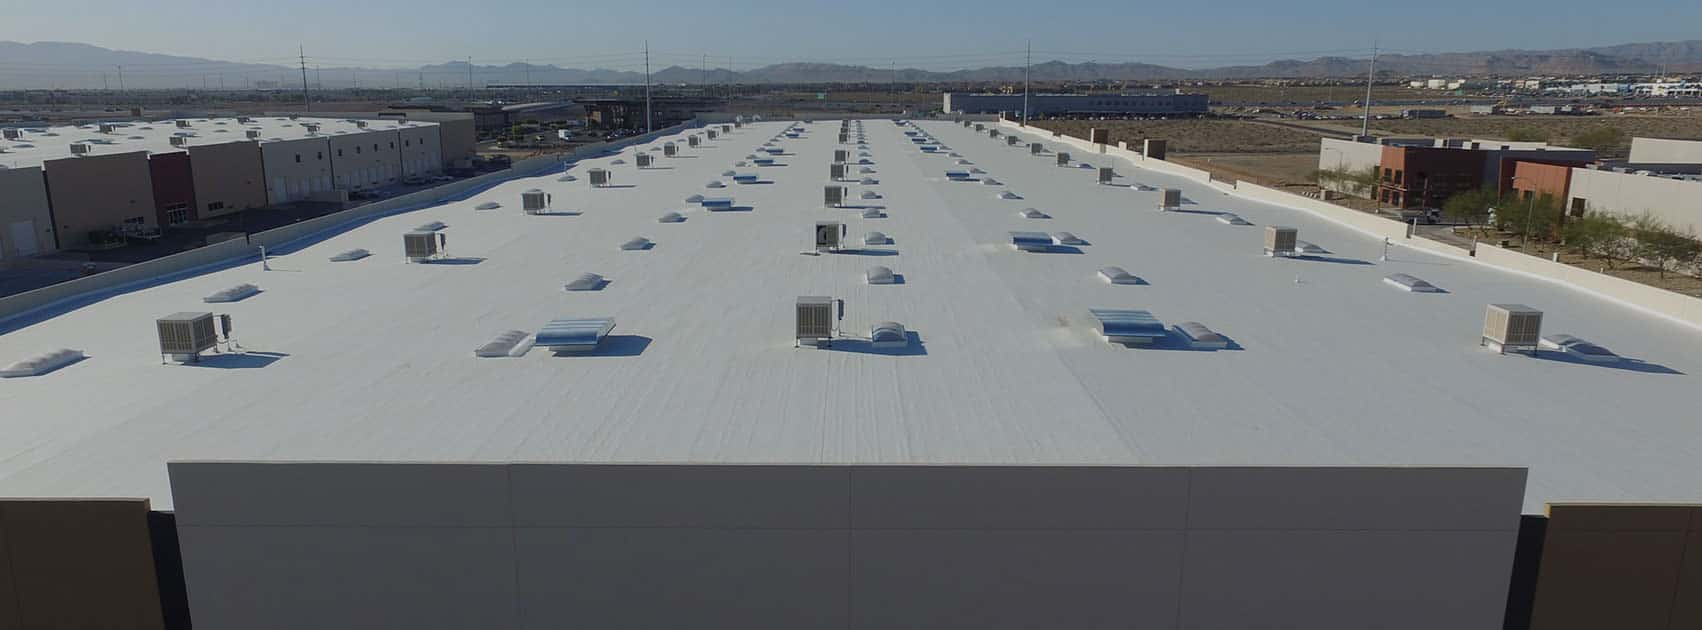 jones corp las vegas commercial roofing